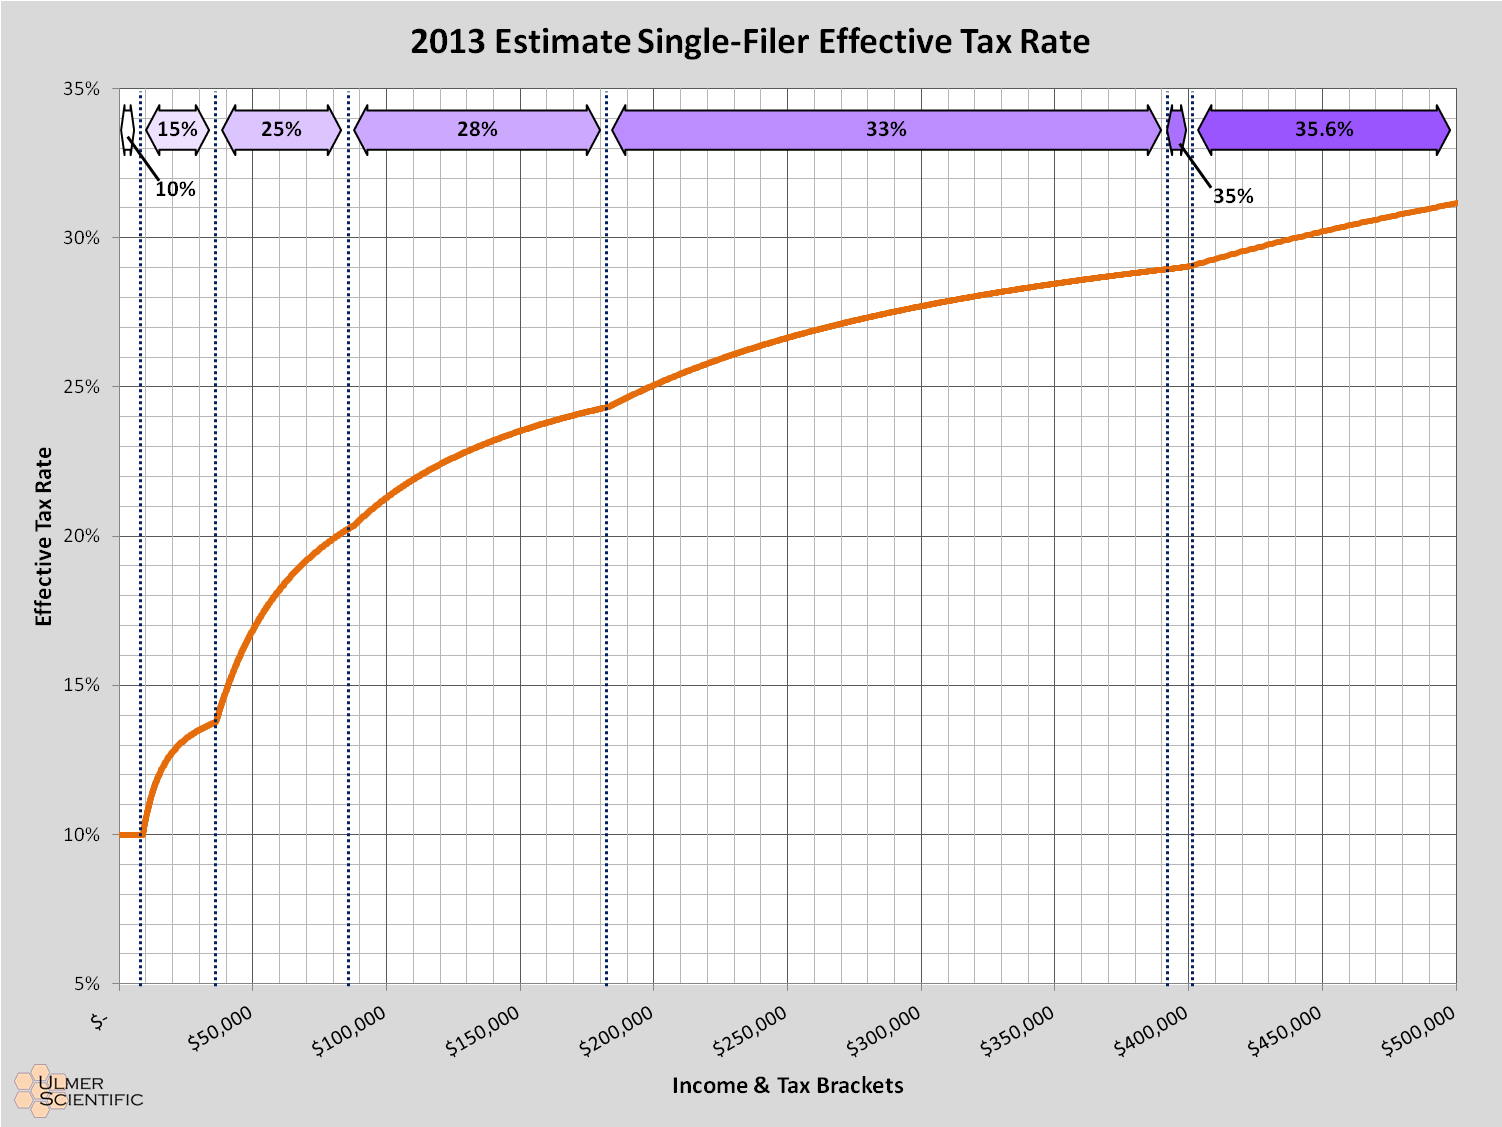 tax rate , on one's income. Plotting this rate against income